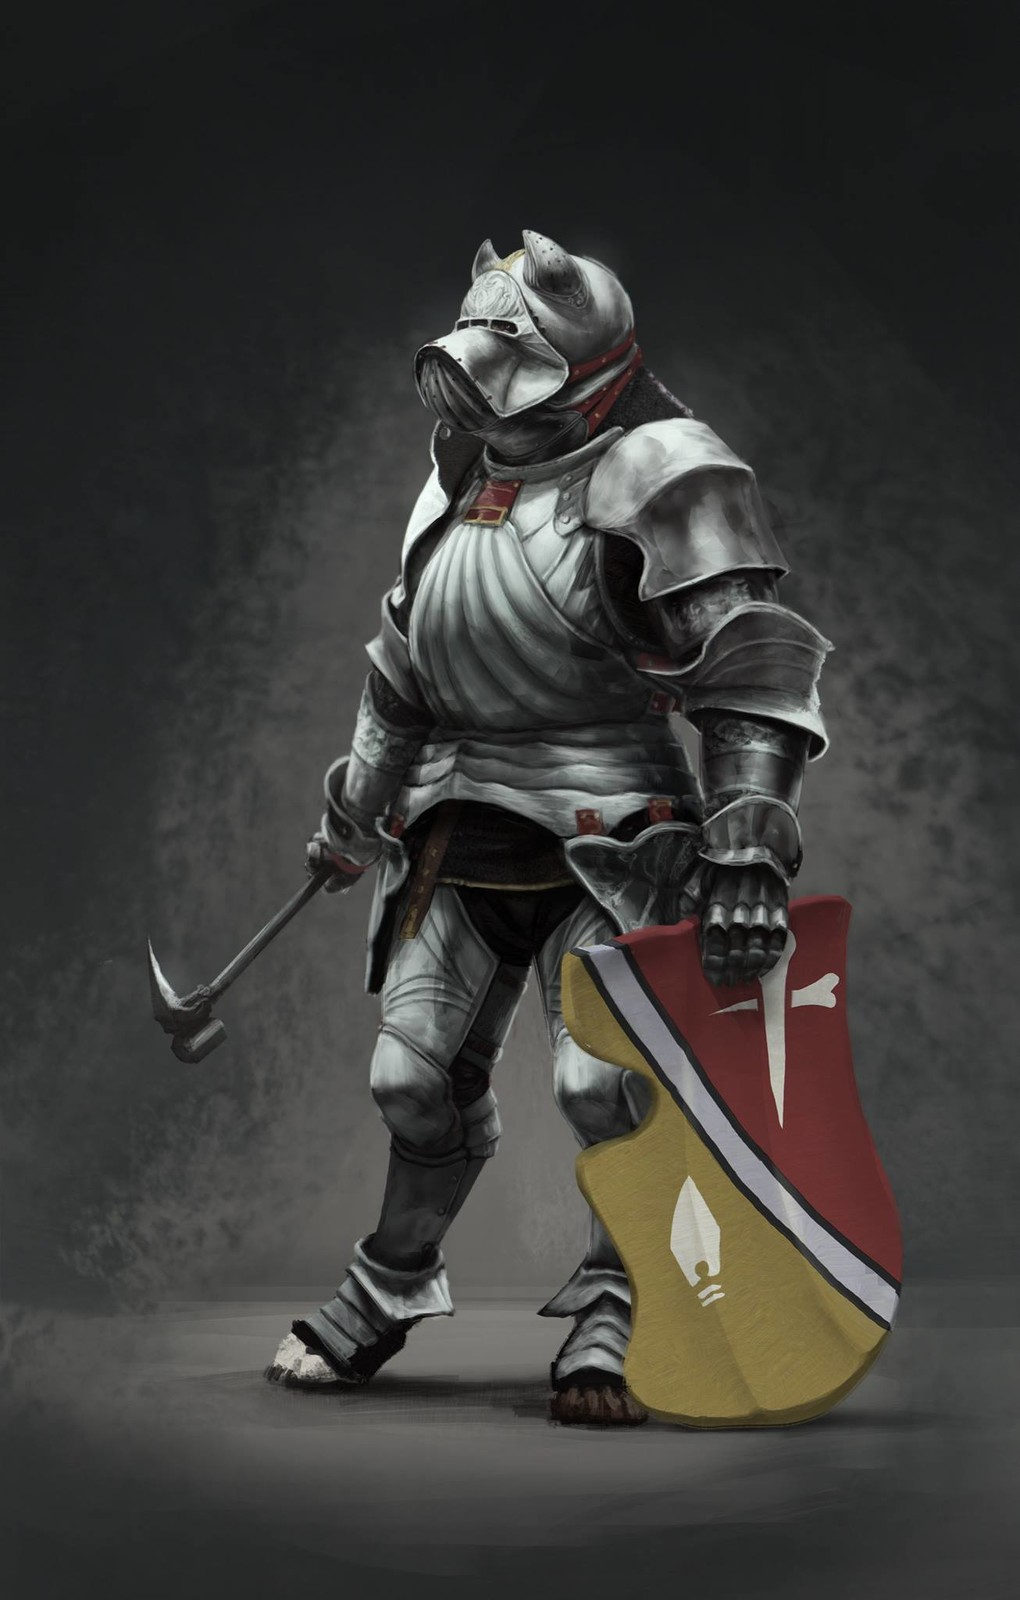 Costume Design: Alvise of the Temple Guard full-plate armor